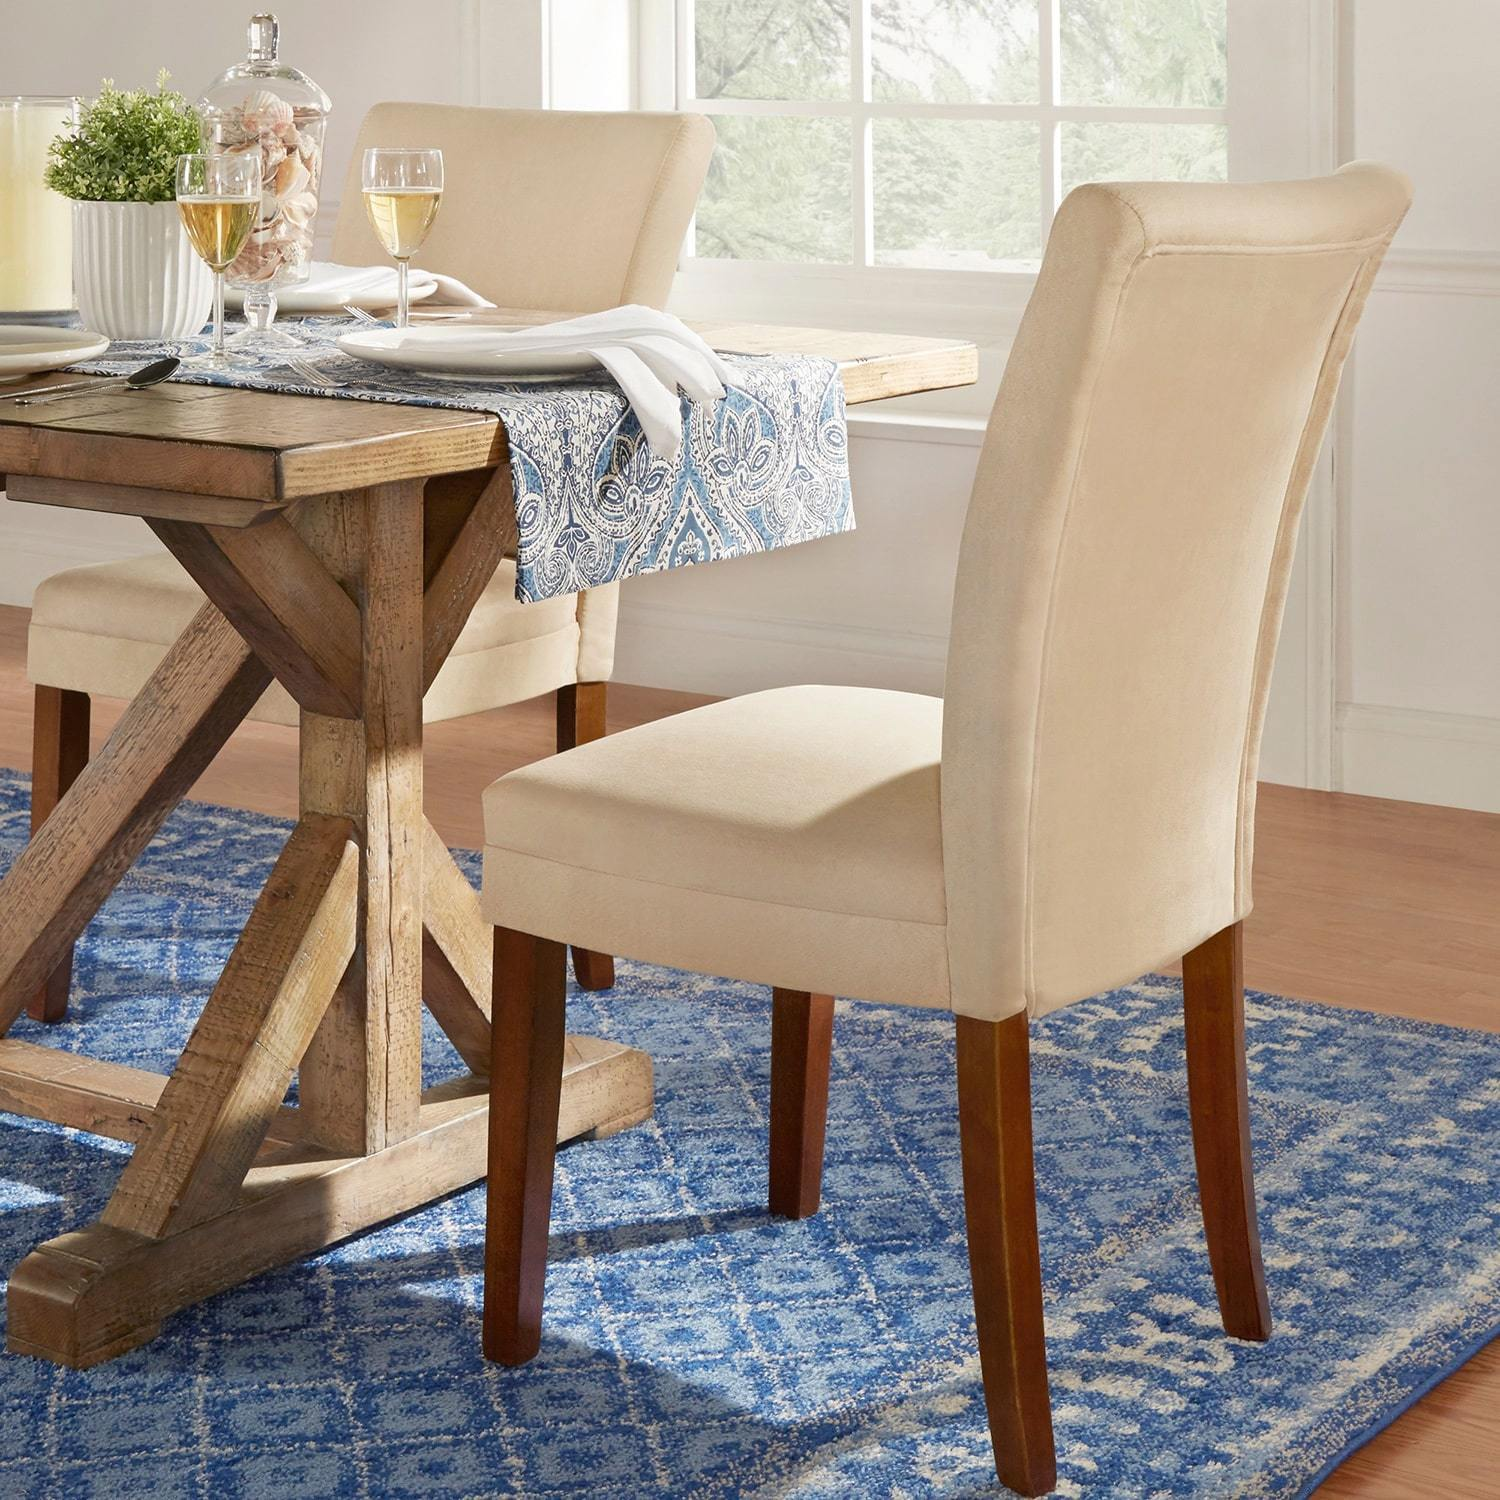 Bohemian Eclectic Kitchen Dining Room Chairs